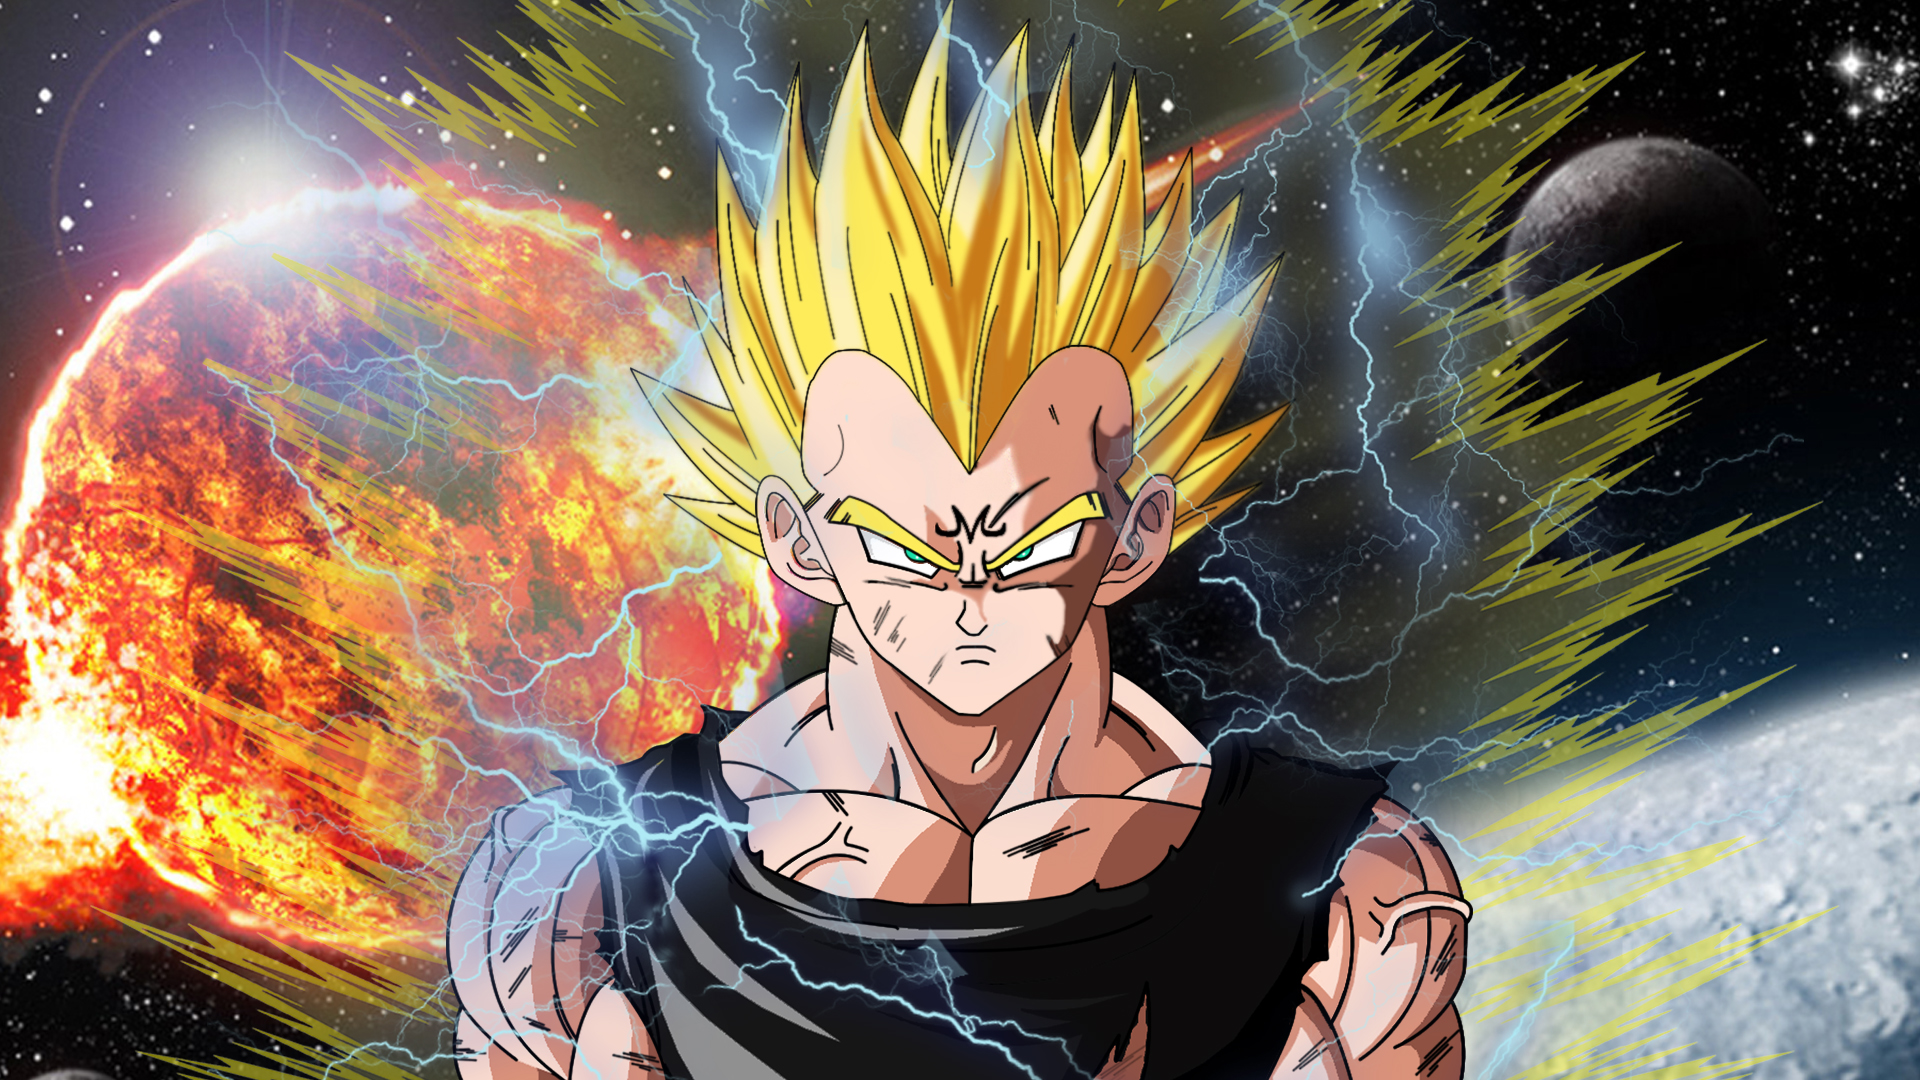 Majin Vegeta Dragon Ball Z Wallpaper 37528785 Fanpop